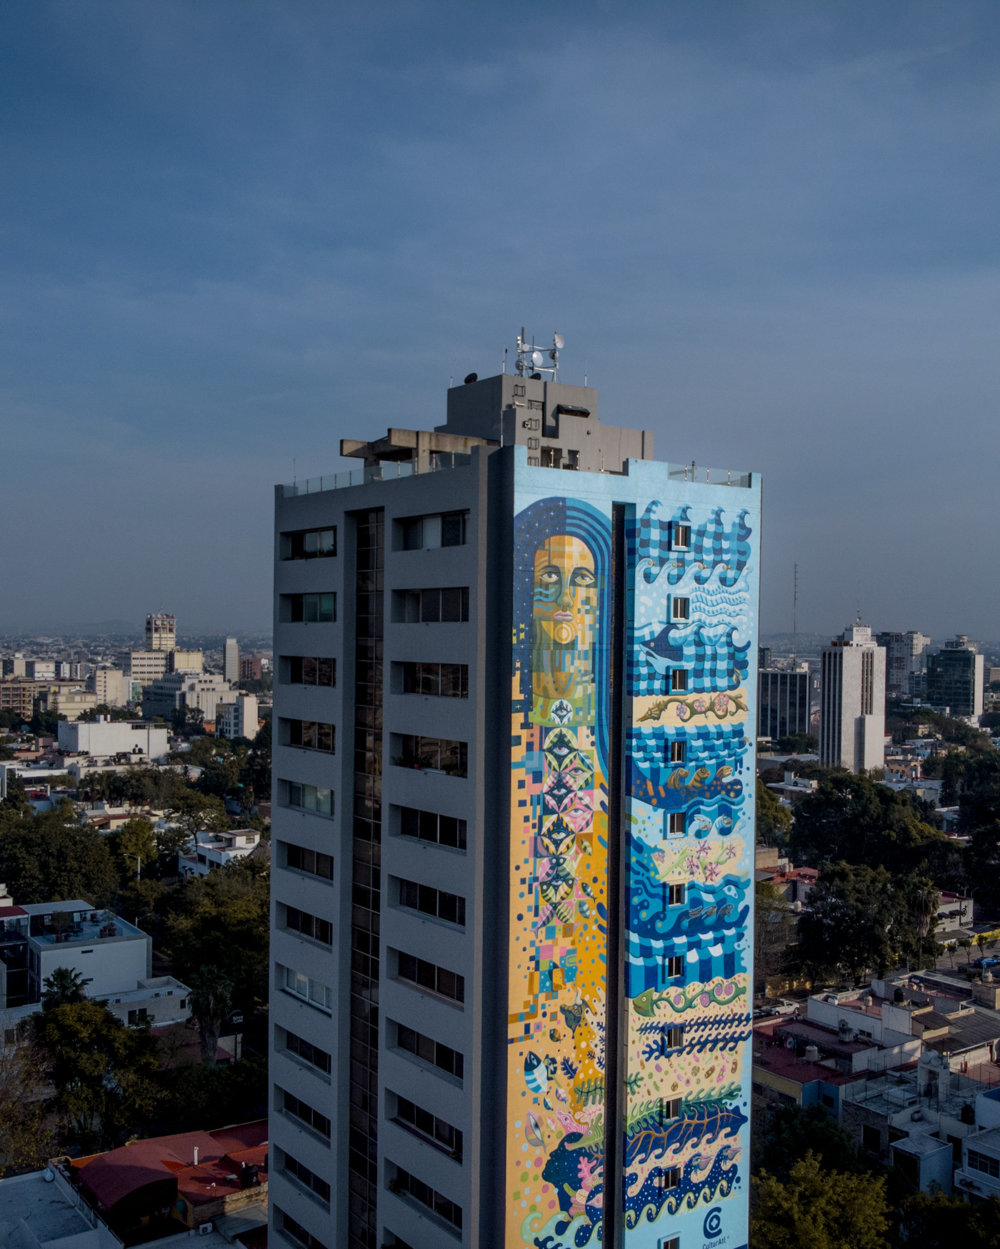 Marvelous Colorful Murals By Raul Sisniega 02